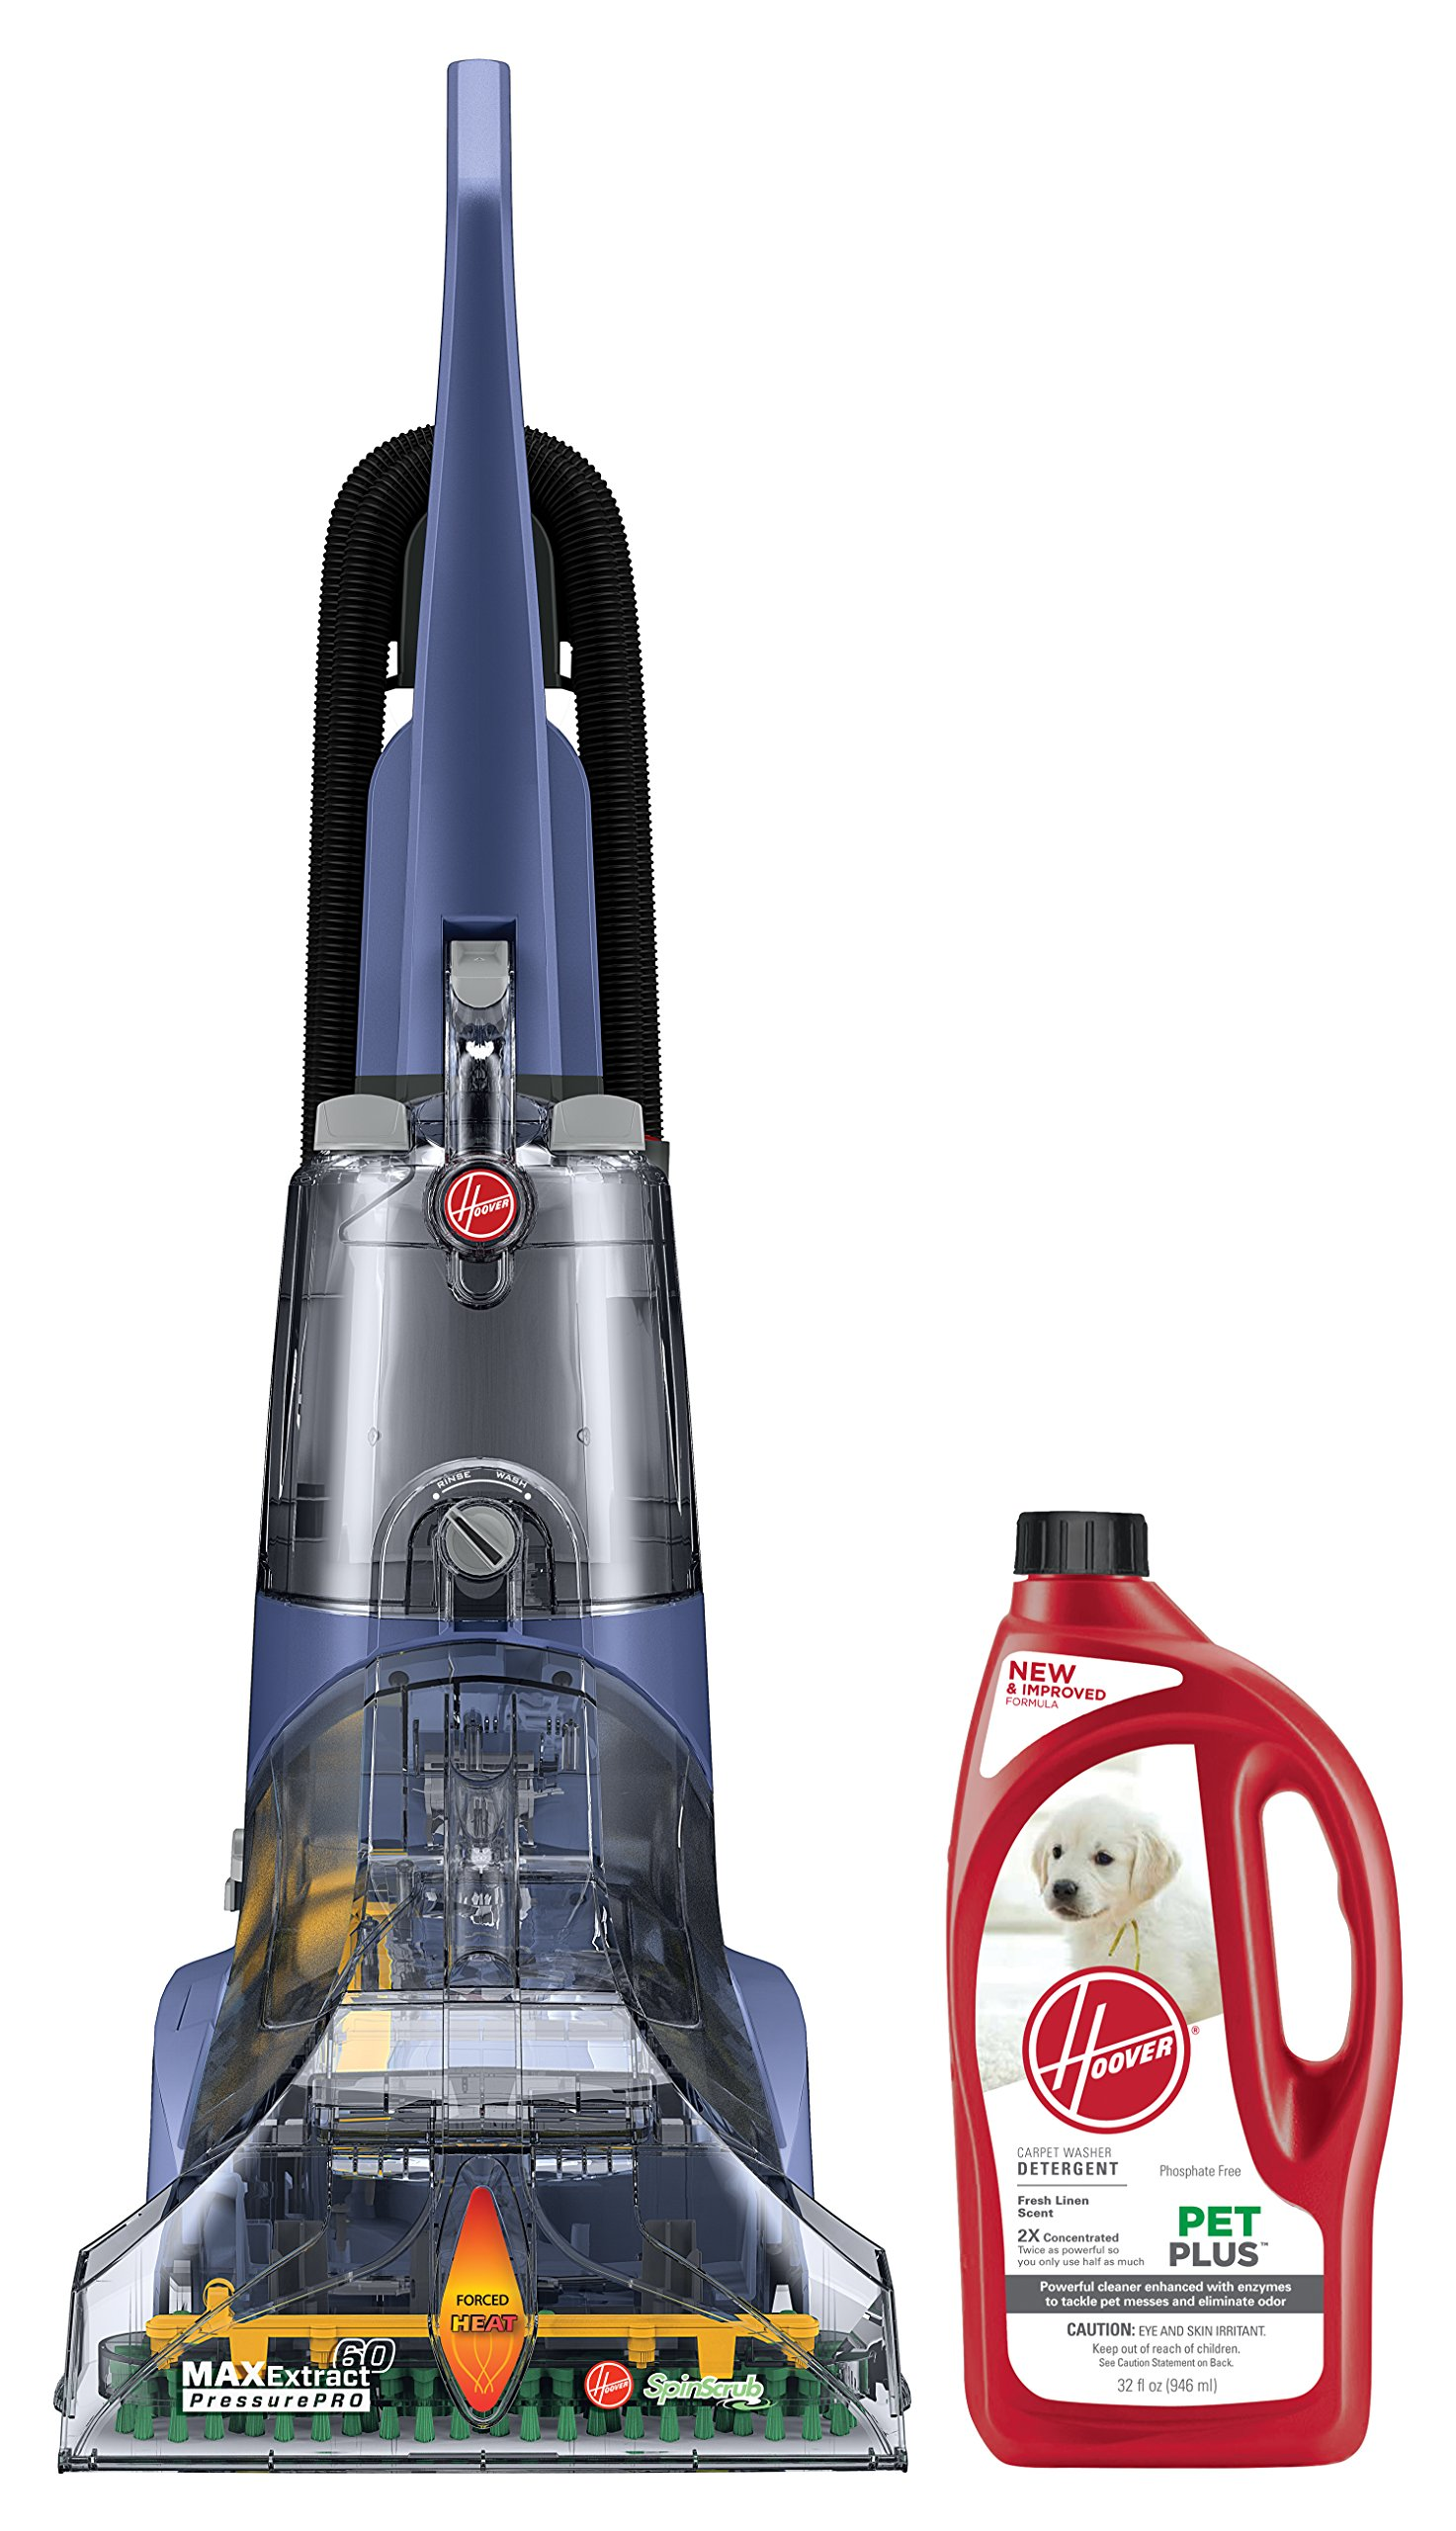 Hoover Max Extract 60 Pressure Pro Carpet Deep Cleaner, FH50220 and Hoover 2X PetPlus Pet Stain & Odor Remover 32 oz, AH30325 Bundle